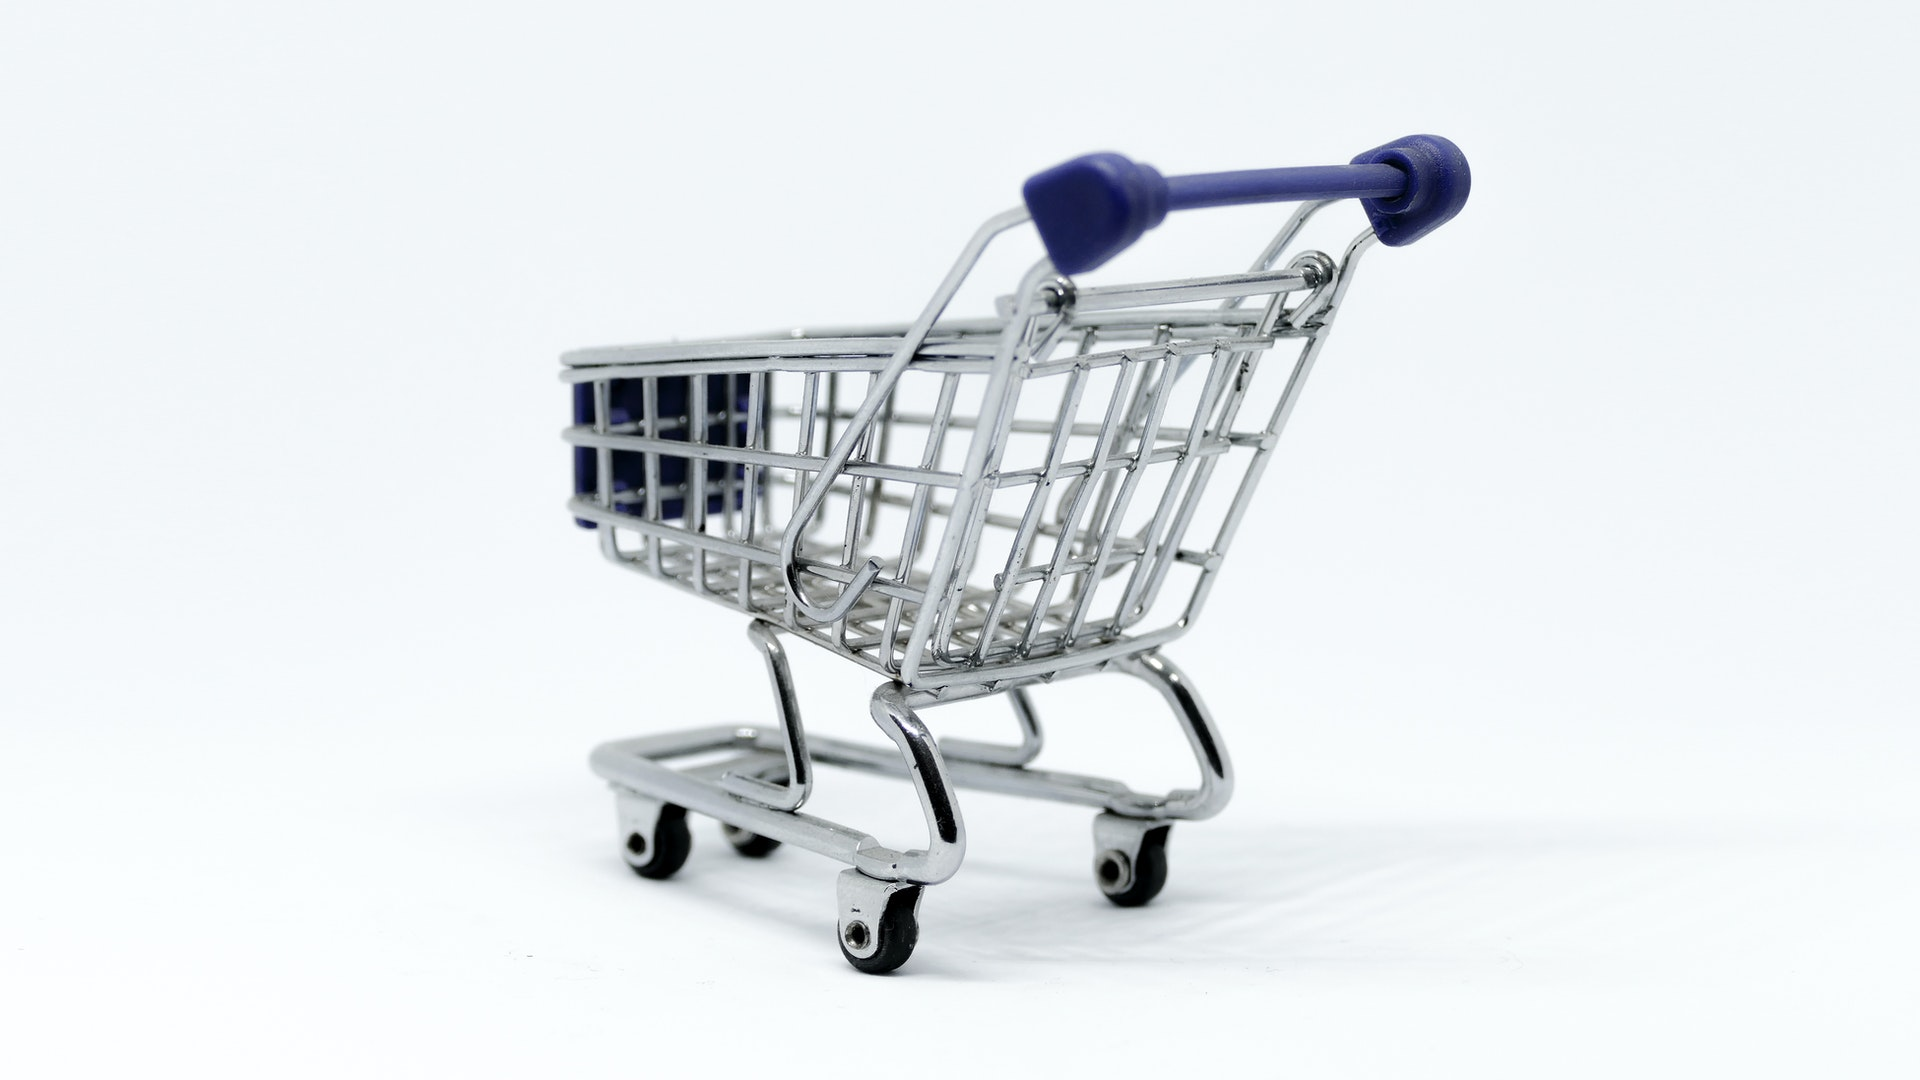 gray-and-blue-stainless-steel-shopping-cart-953862.jpg